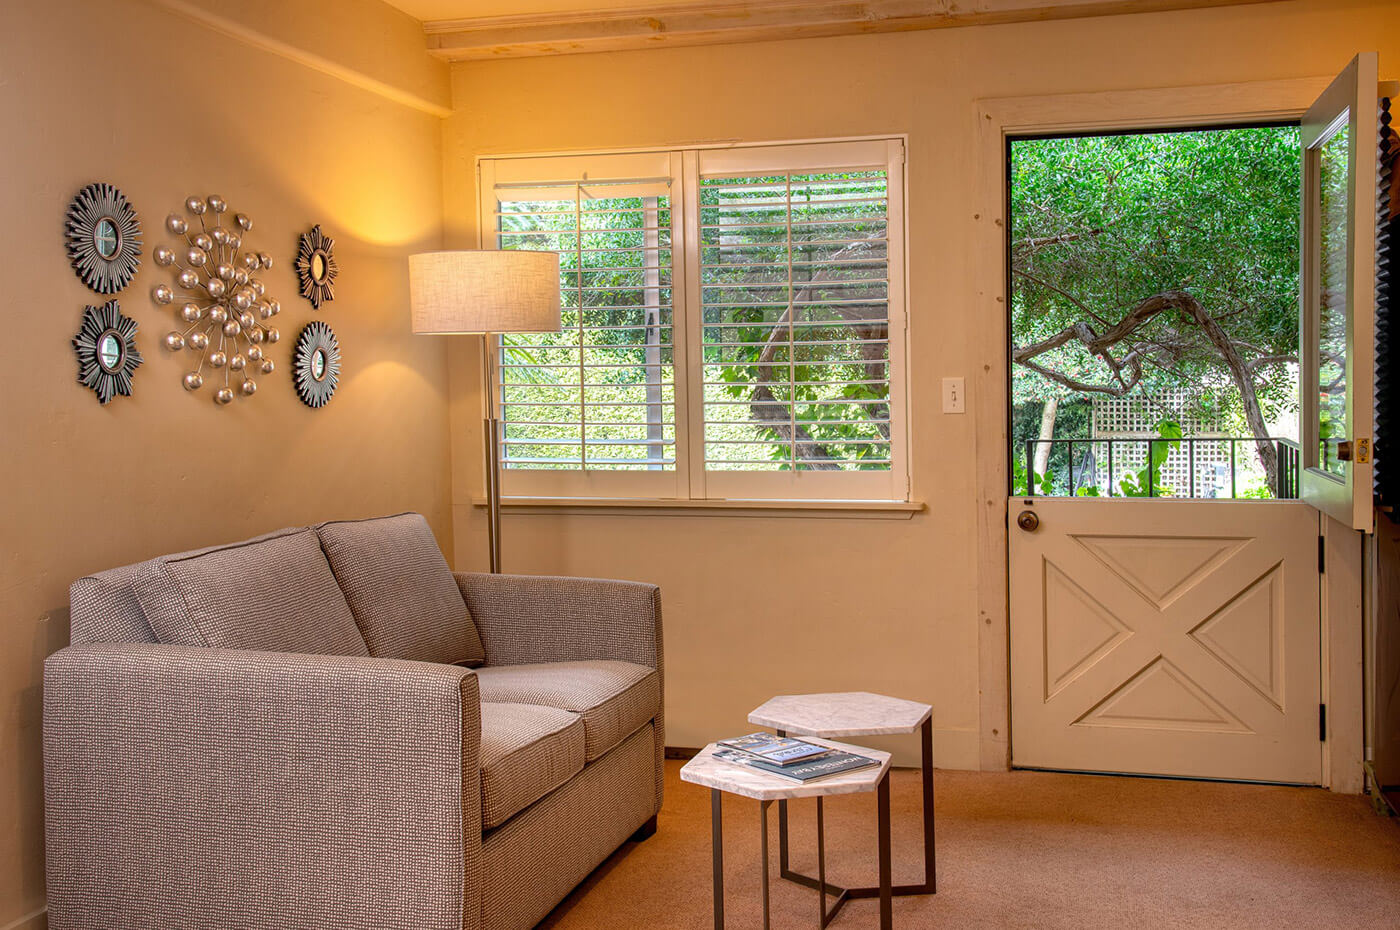 guest room seating area at our Carmel-by-the-Sea boutique hotel